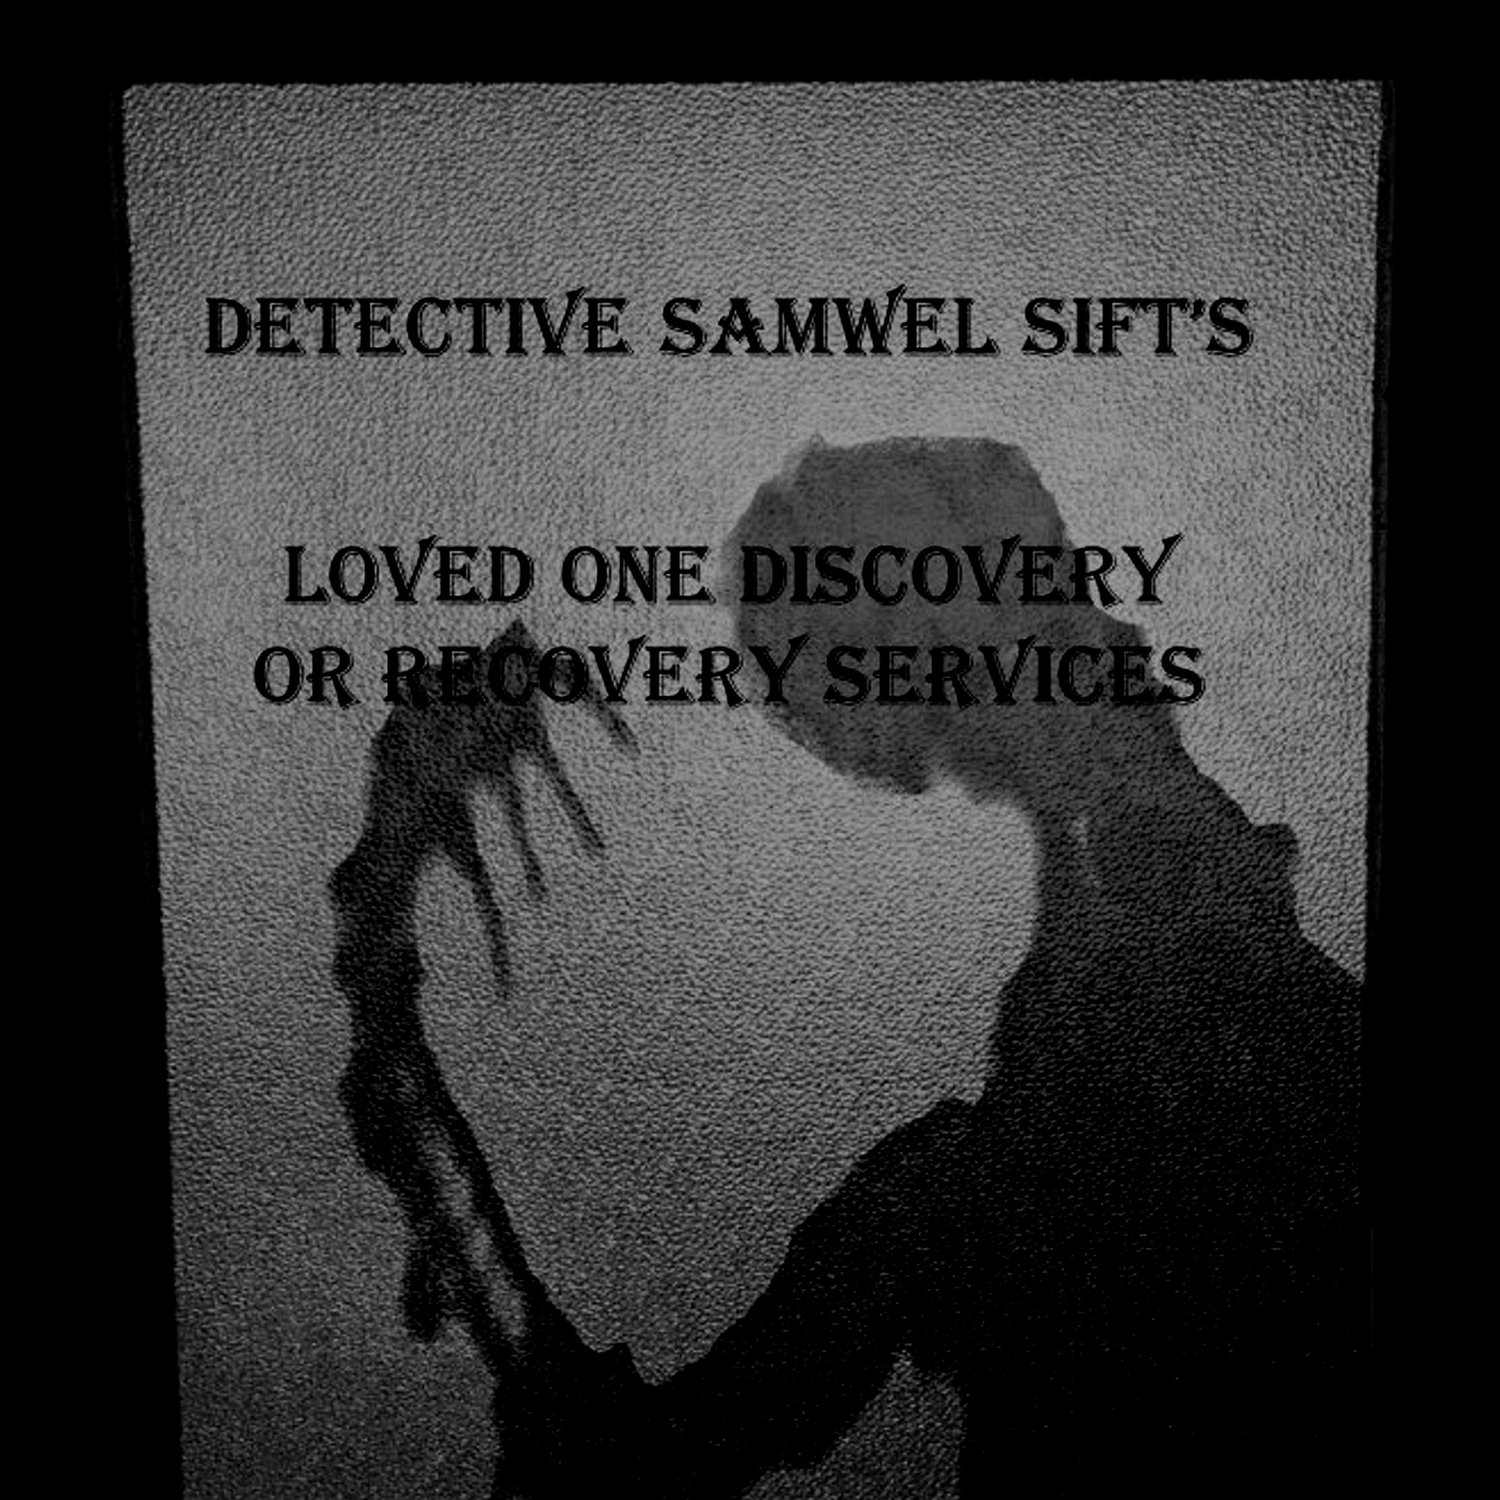 Detective Samwel Sift's Loved One Discovery or Recovery Services